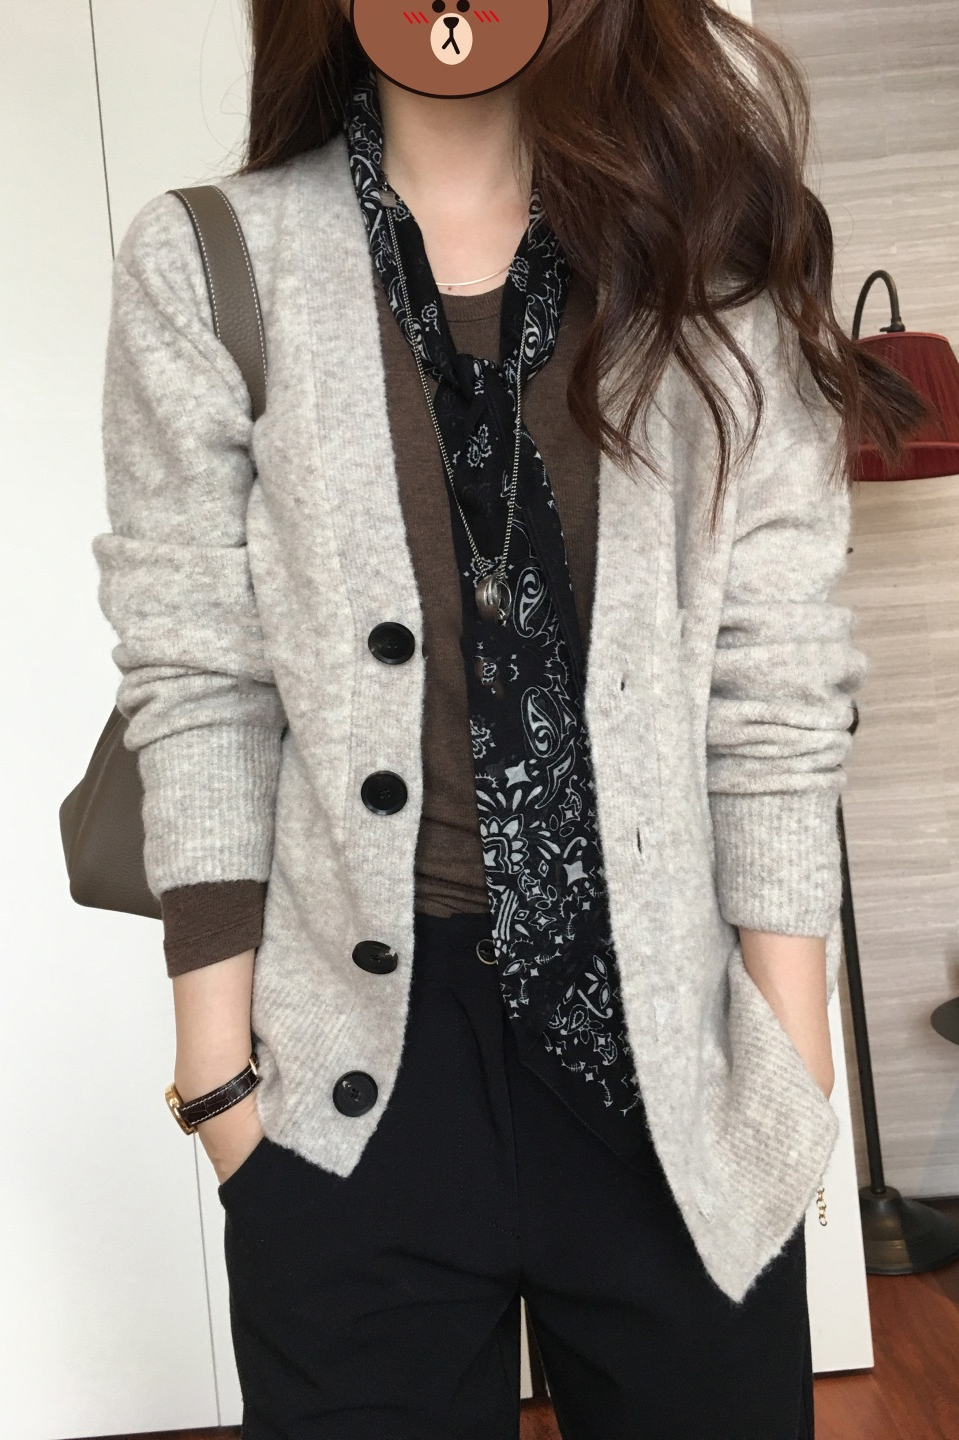 v-neck small incense wind retro outside with cashmere cardigan knitted jacket 2021 spring models female gentle lazy wind sweater